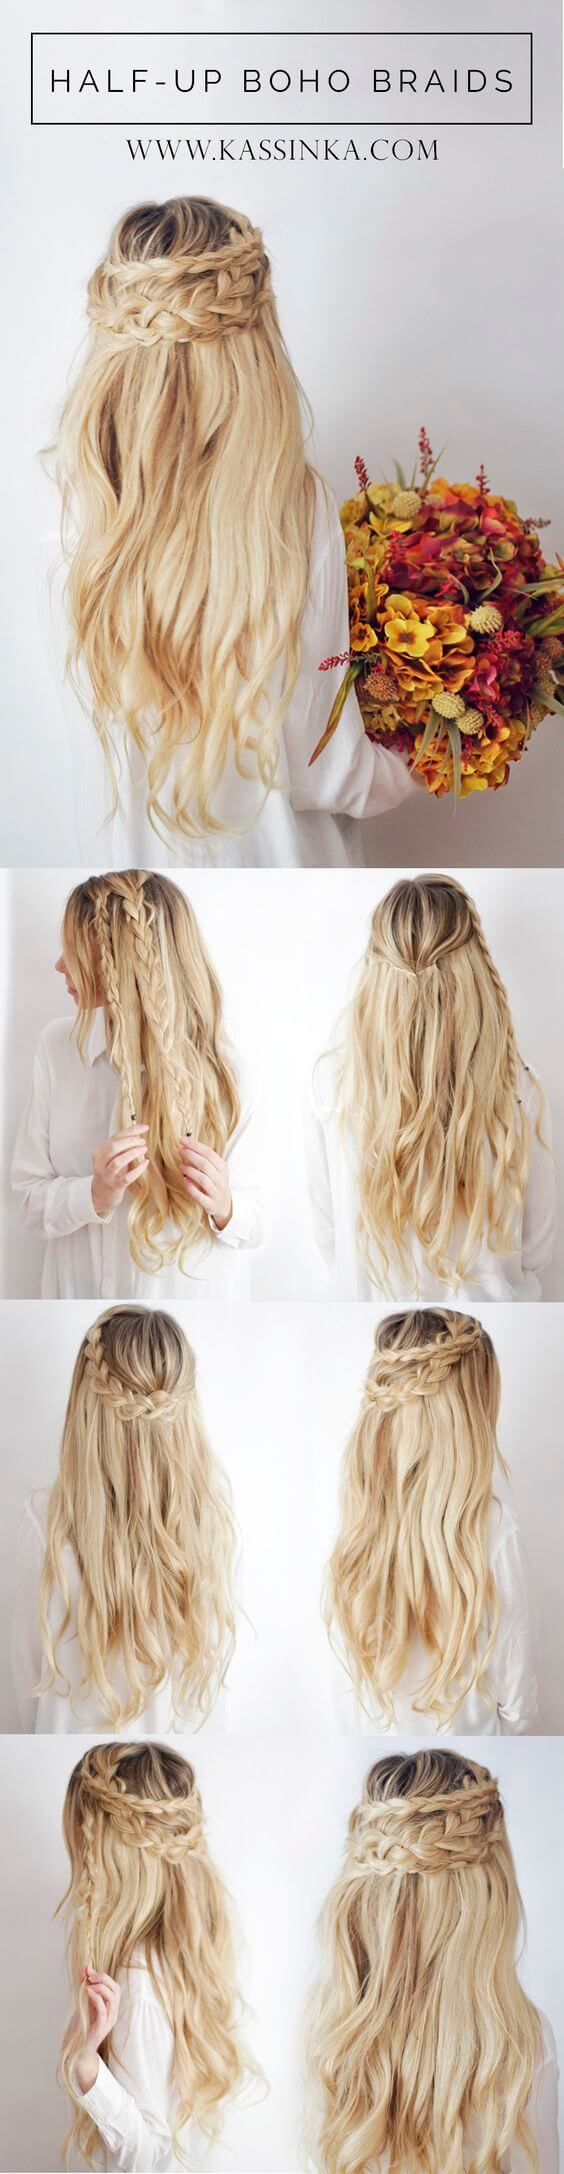 33 most popular step by step hairstyle tutorials crown braids 17 stunning braided hairstyles so easy you can actually do them yourself solutioingenieria Gallery